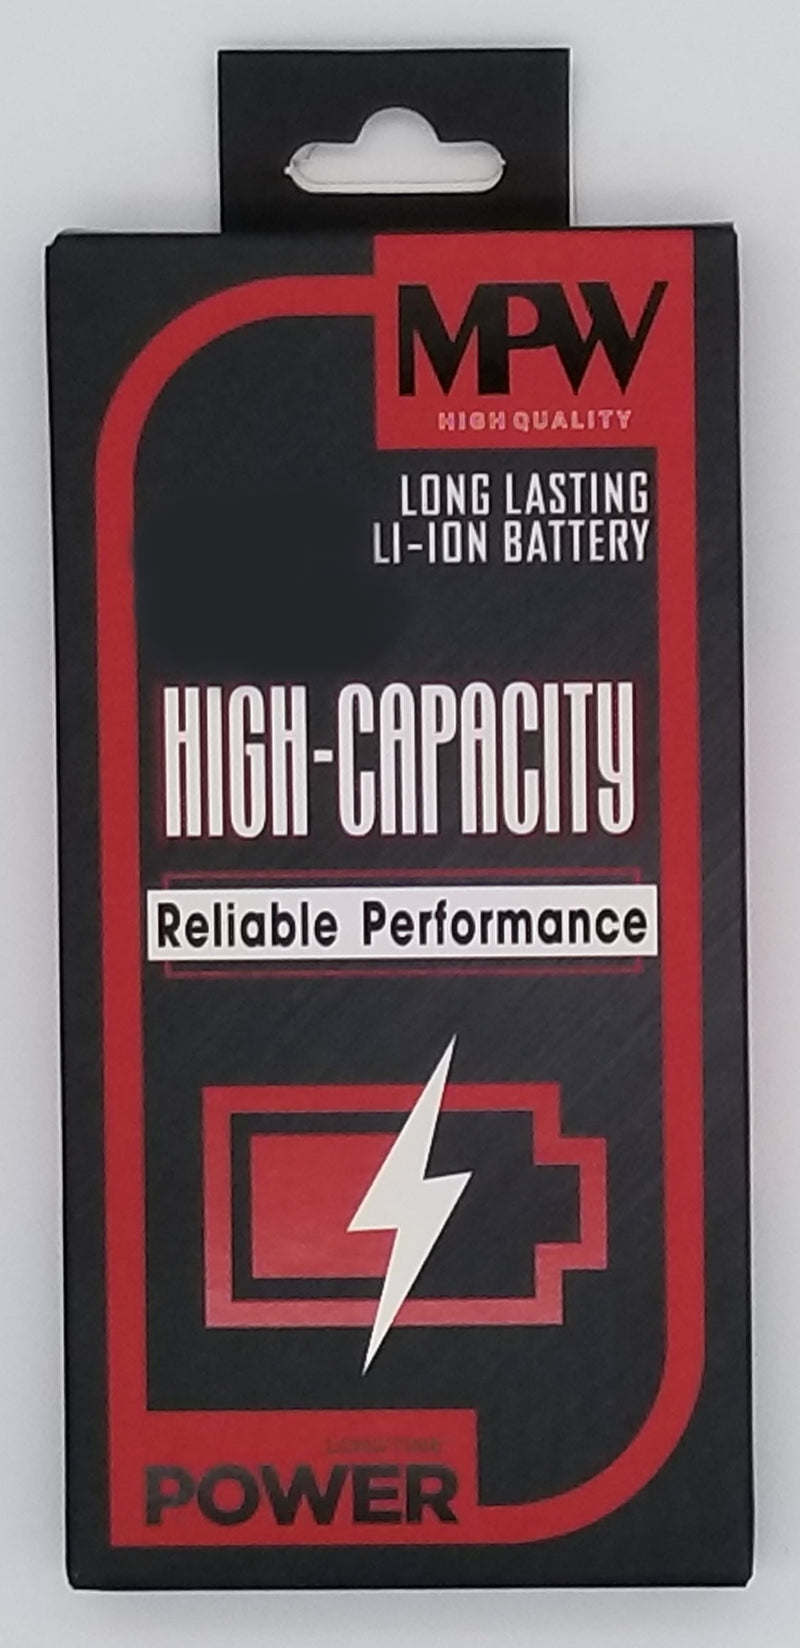 MPW High-Capacity Battery for iPhone XS Max